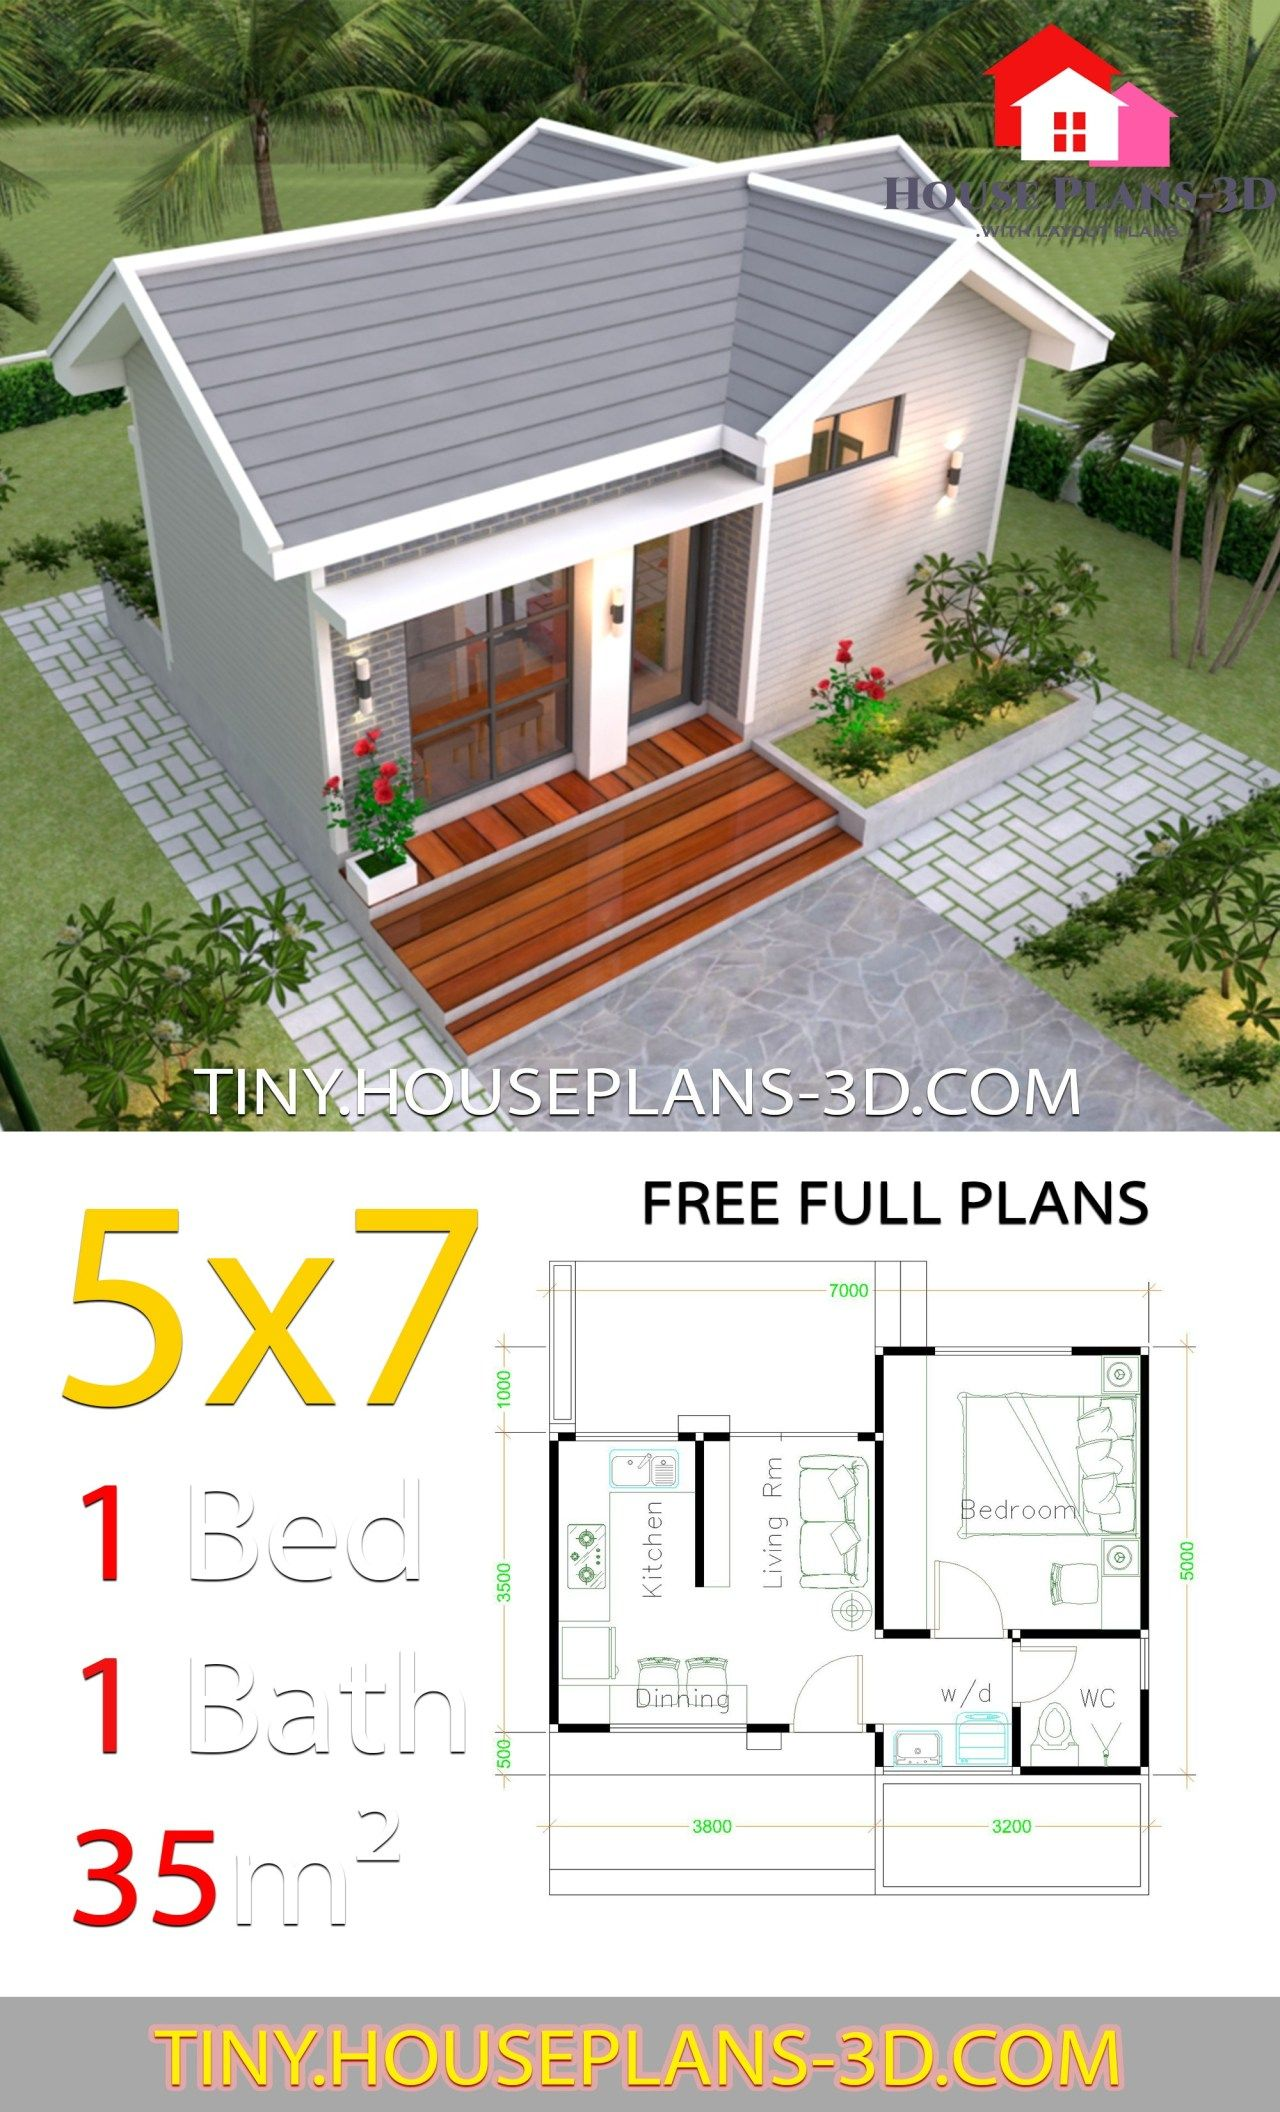 284ad1e49dedb698aa9277127785a368 - View Small Guest House Design In India Background